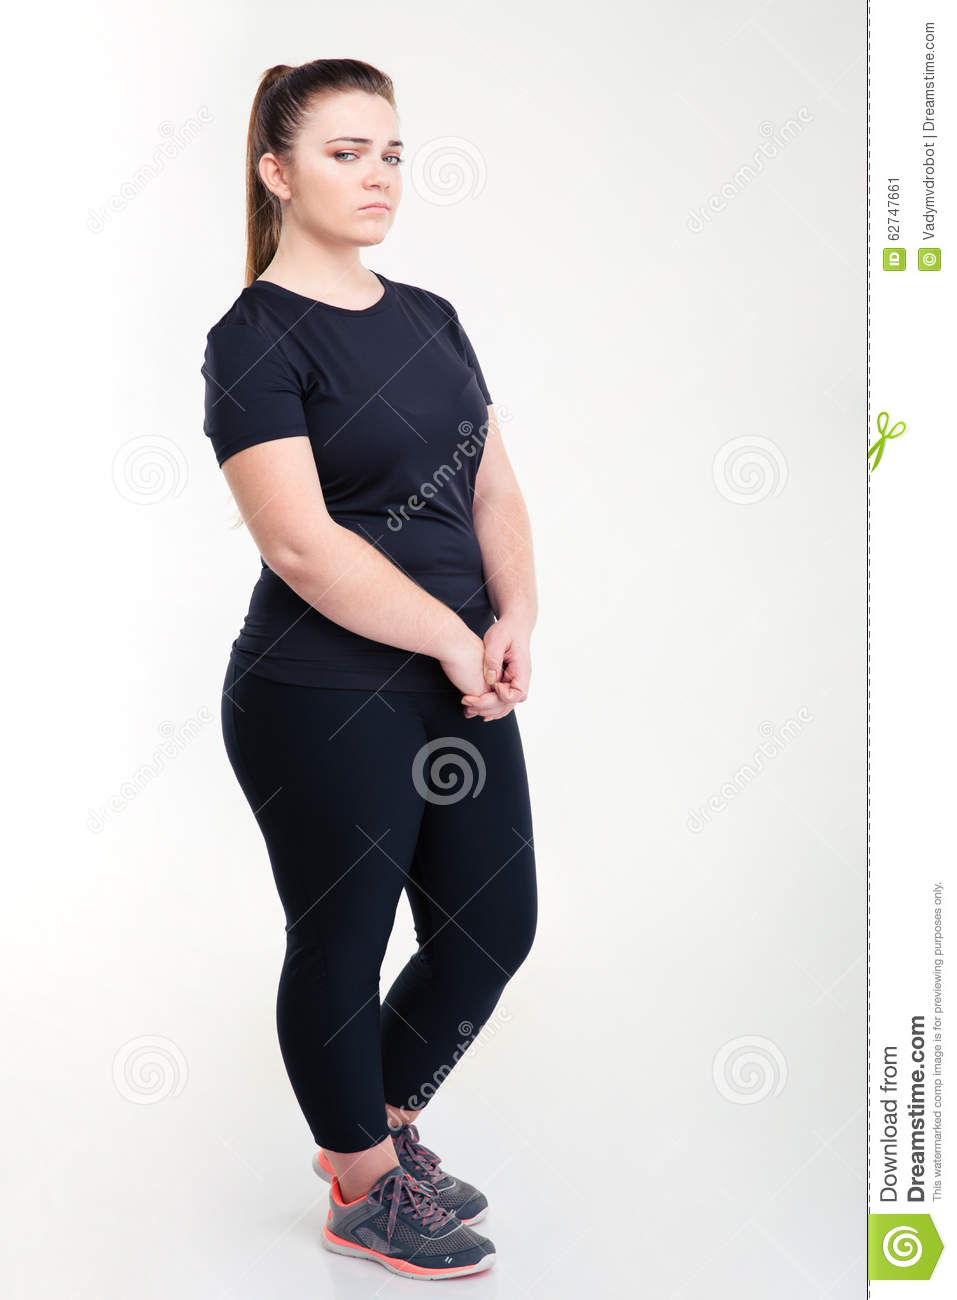 Portrait of a fat sad woman in sportswear